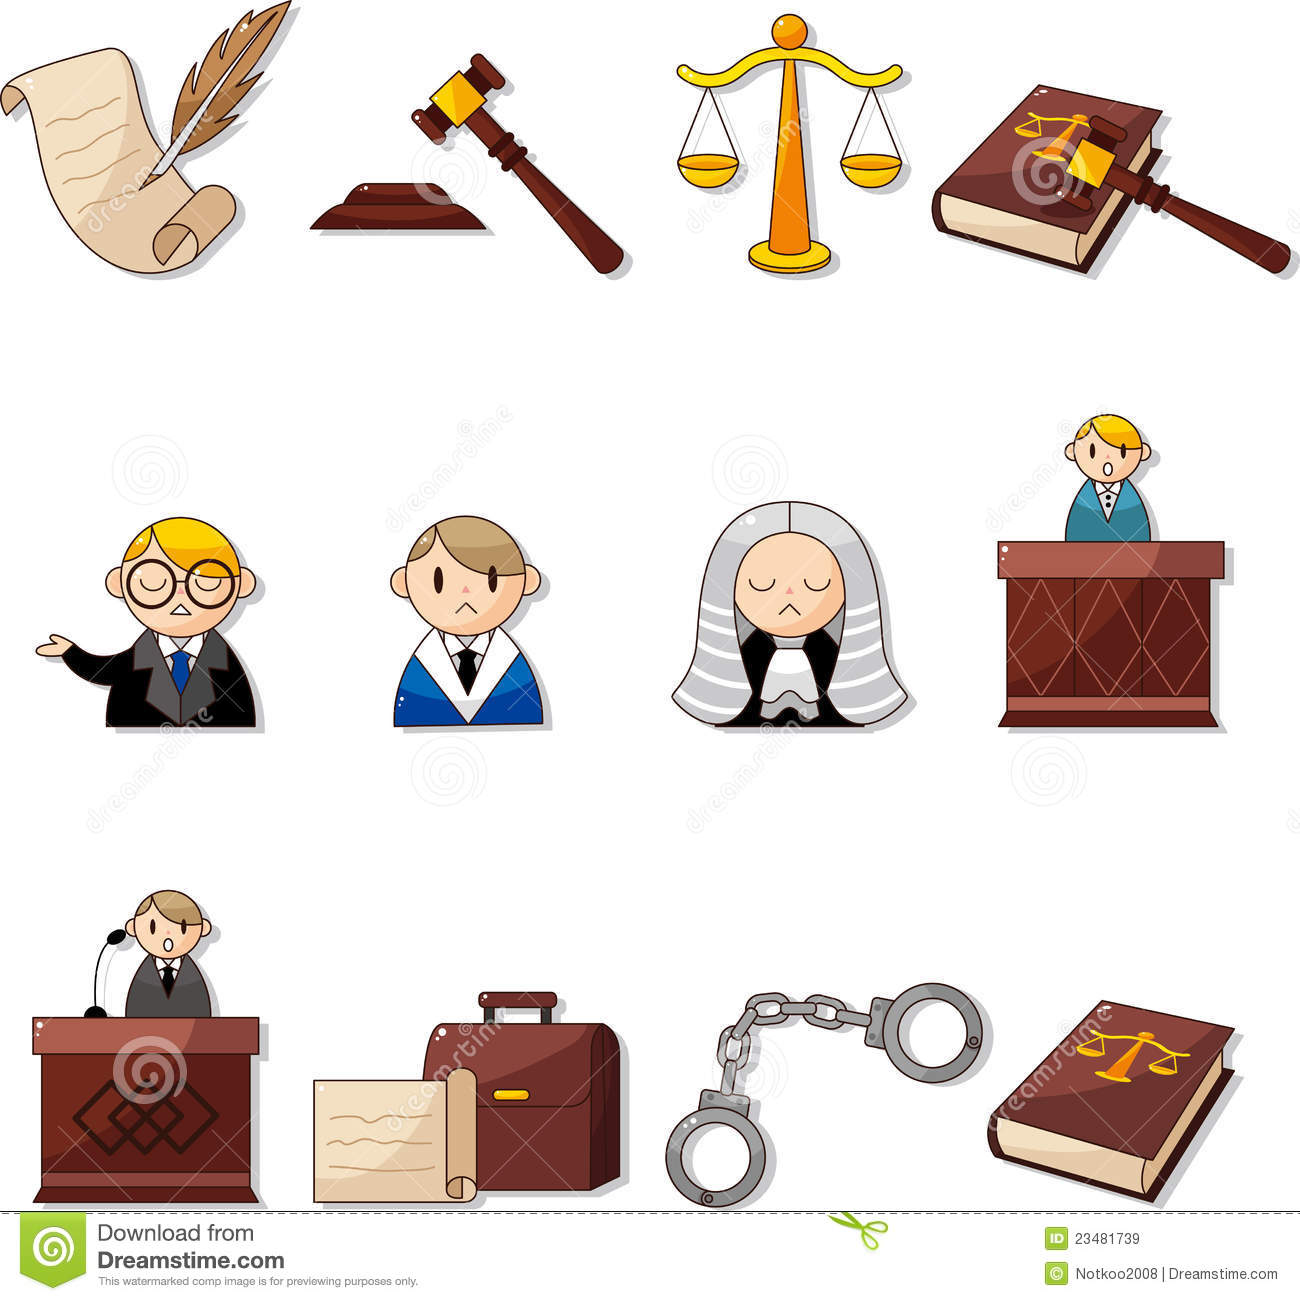 Cartoon law icons royalty free stock images image 23481739